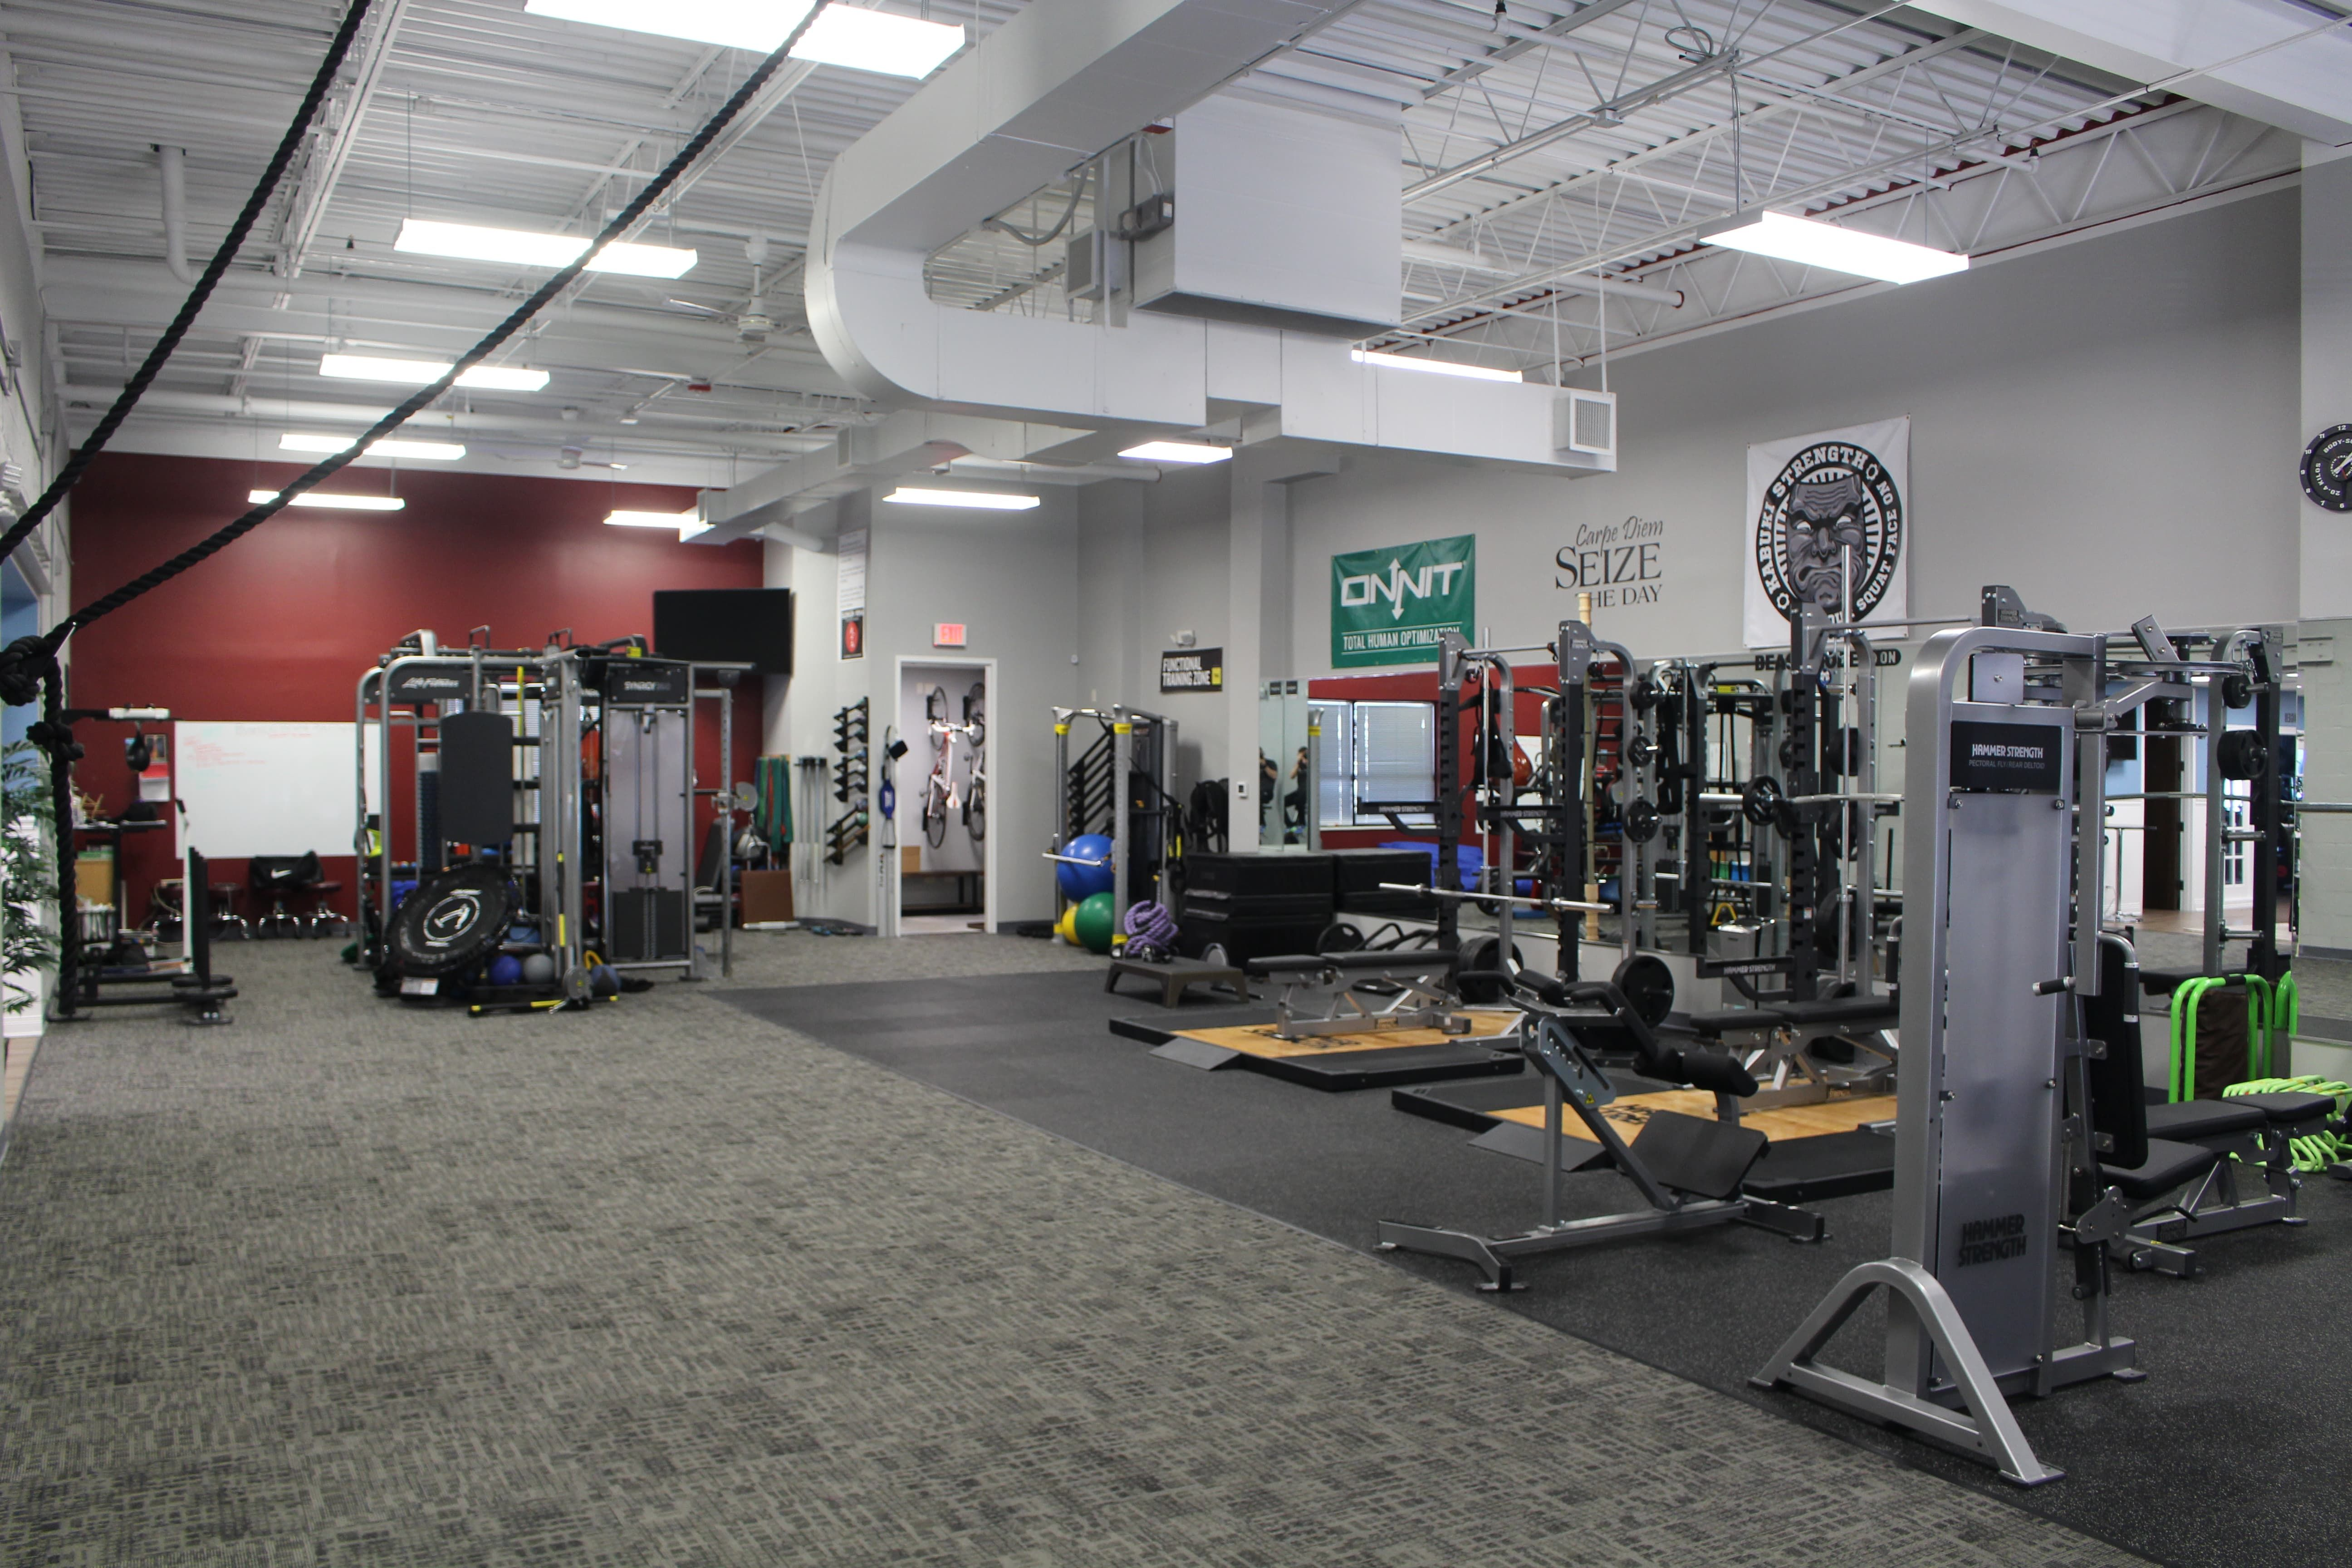 Running Iron Performance Arlington Heights Il Click To Rent By The Hour Fitspace4fitpros Getgymspace Findfitnessspac Treatment Rooms Pro Fitness Rent